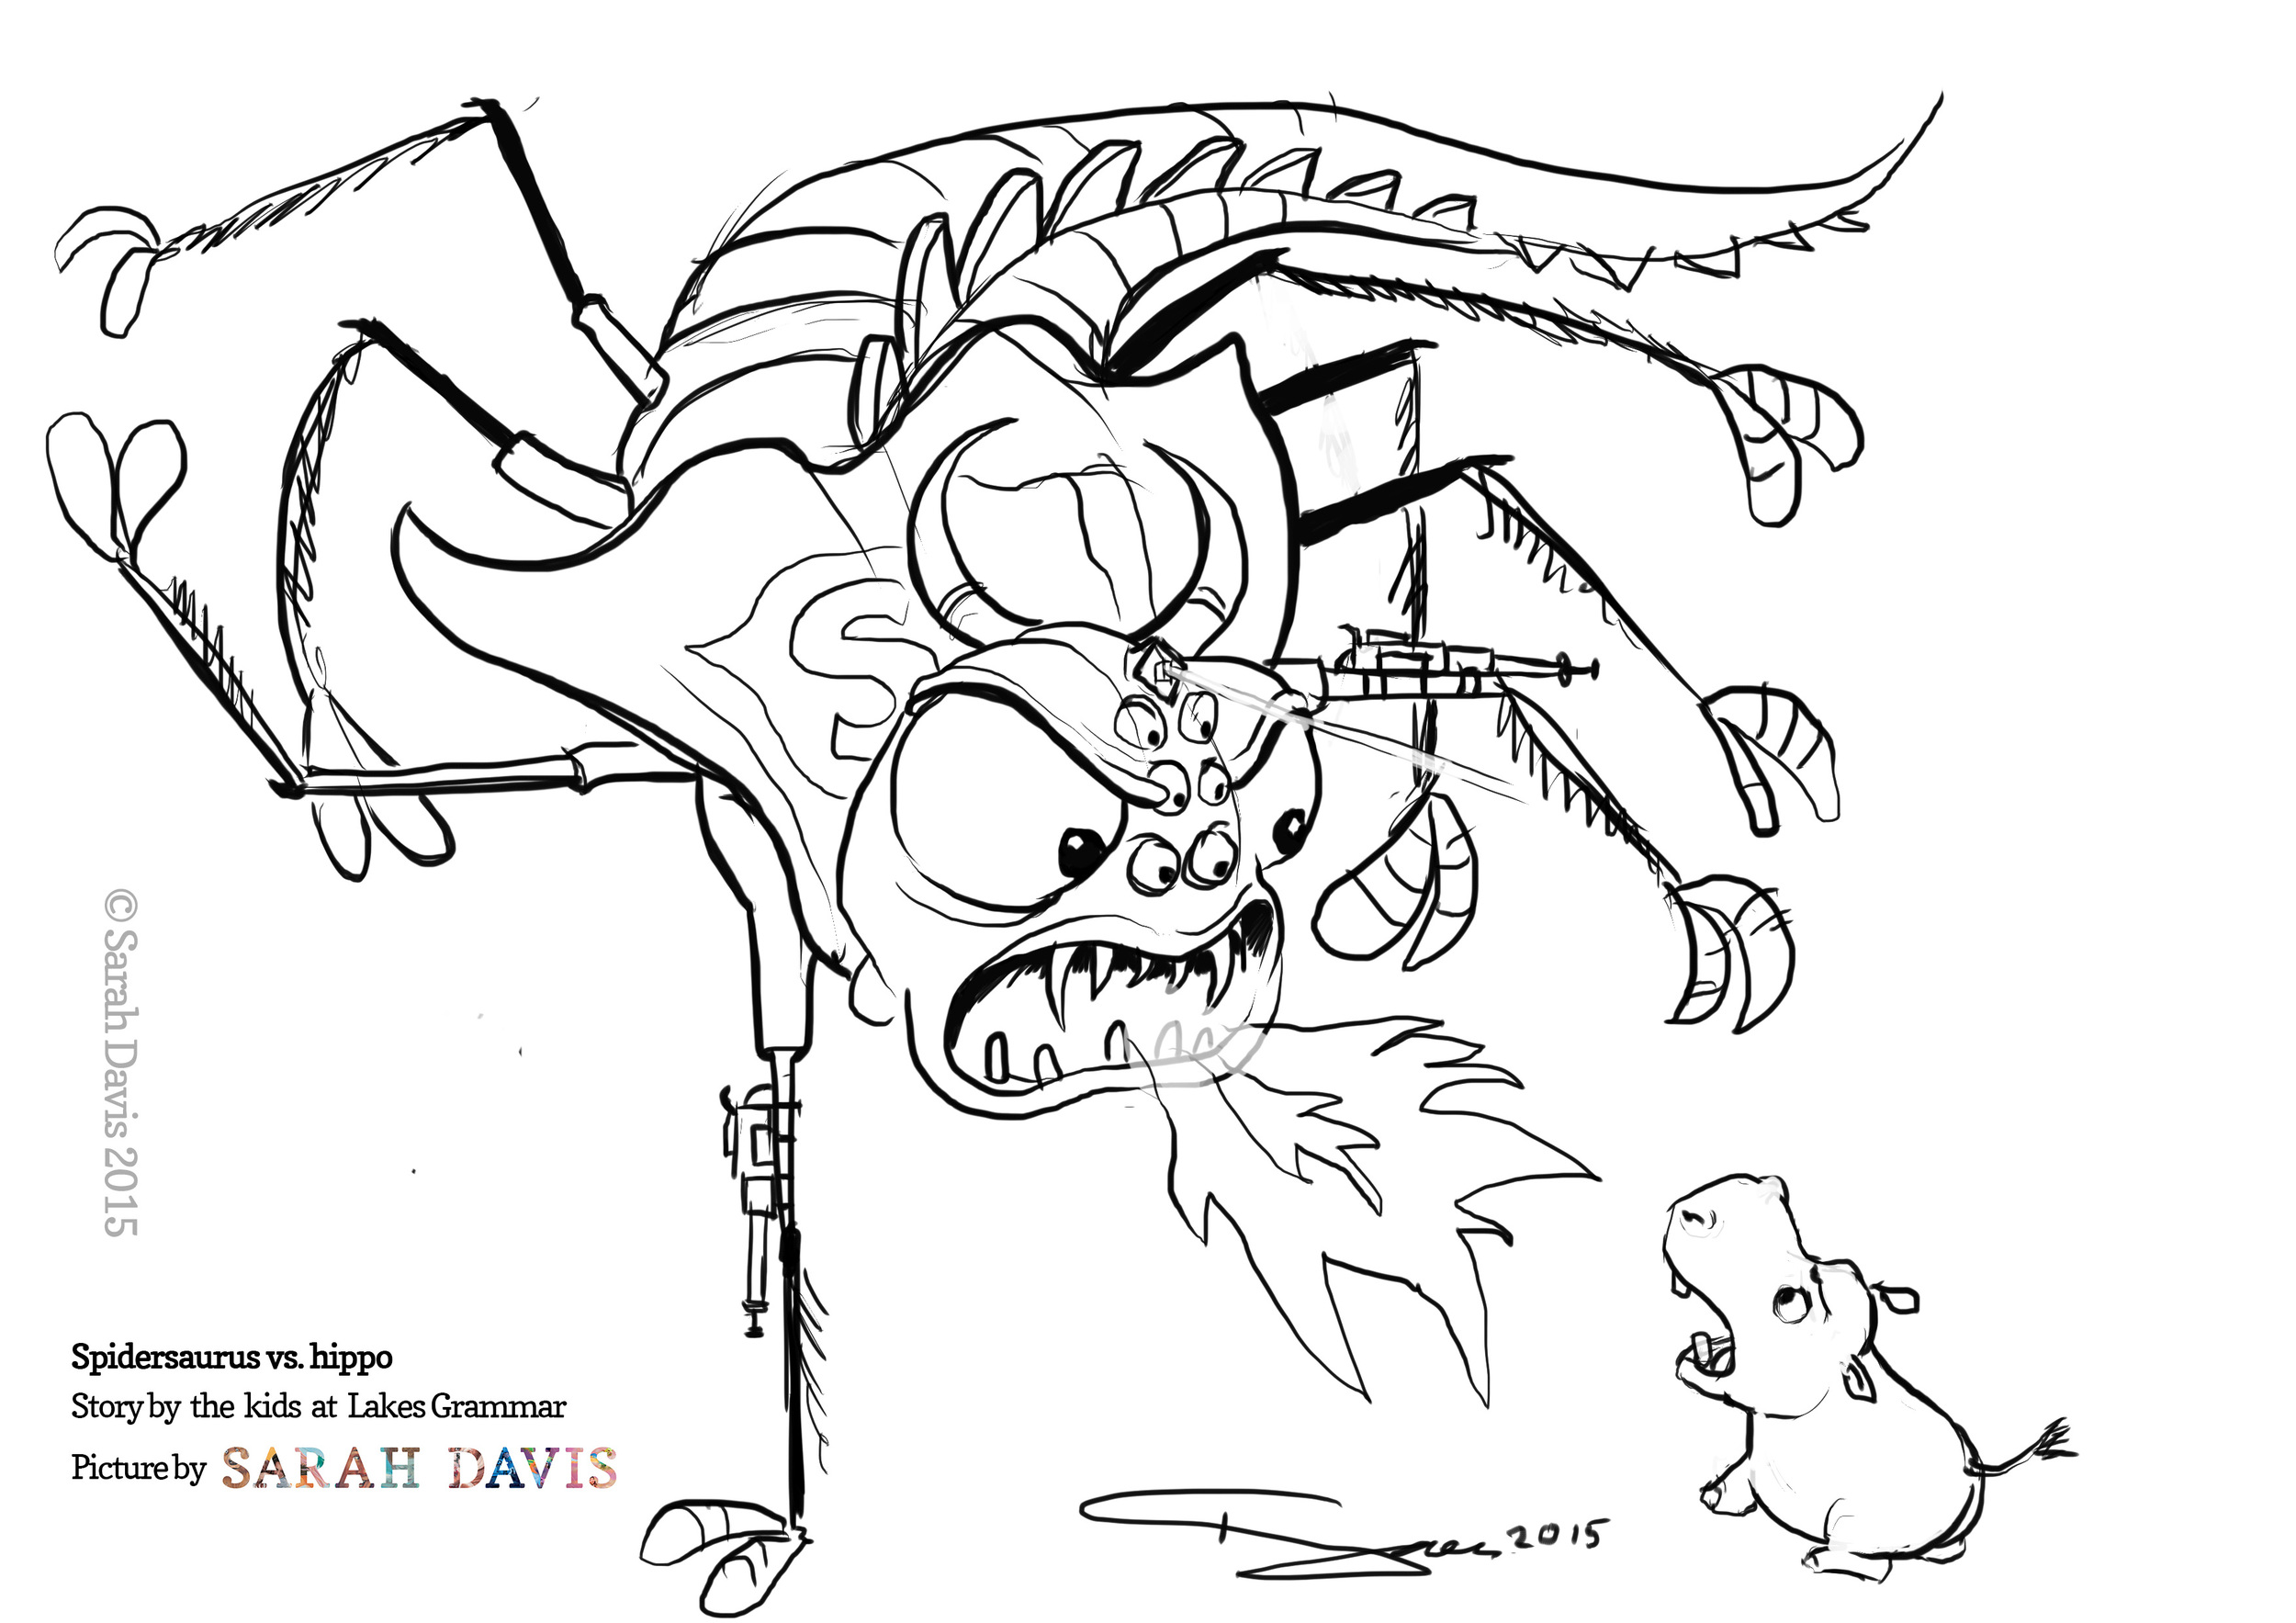 The Lakeview Grammar kids told me to draw an acrobatic Spidersaurus attacking a hippo while breathing fire. Of course.